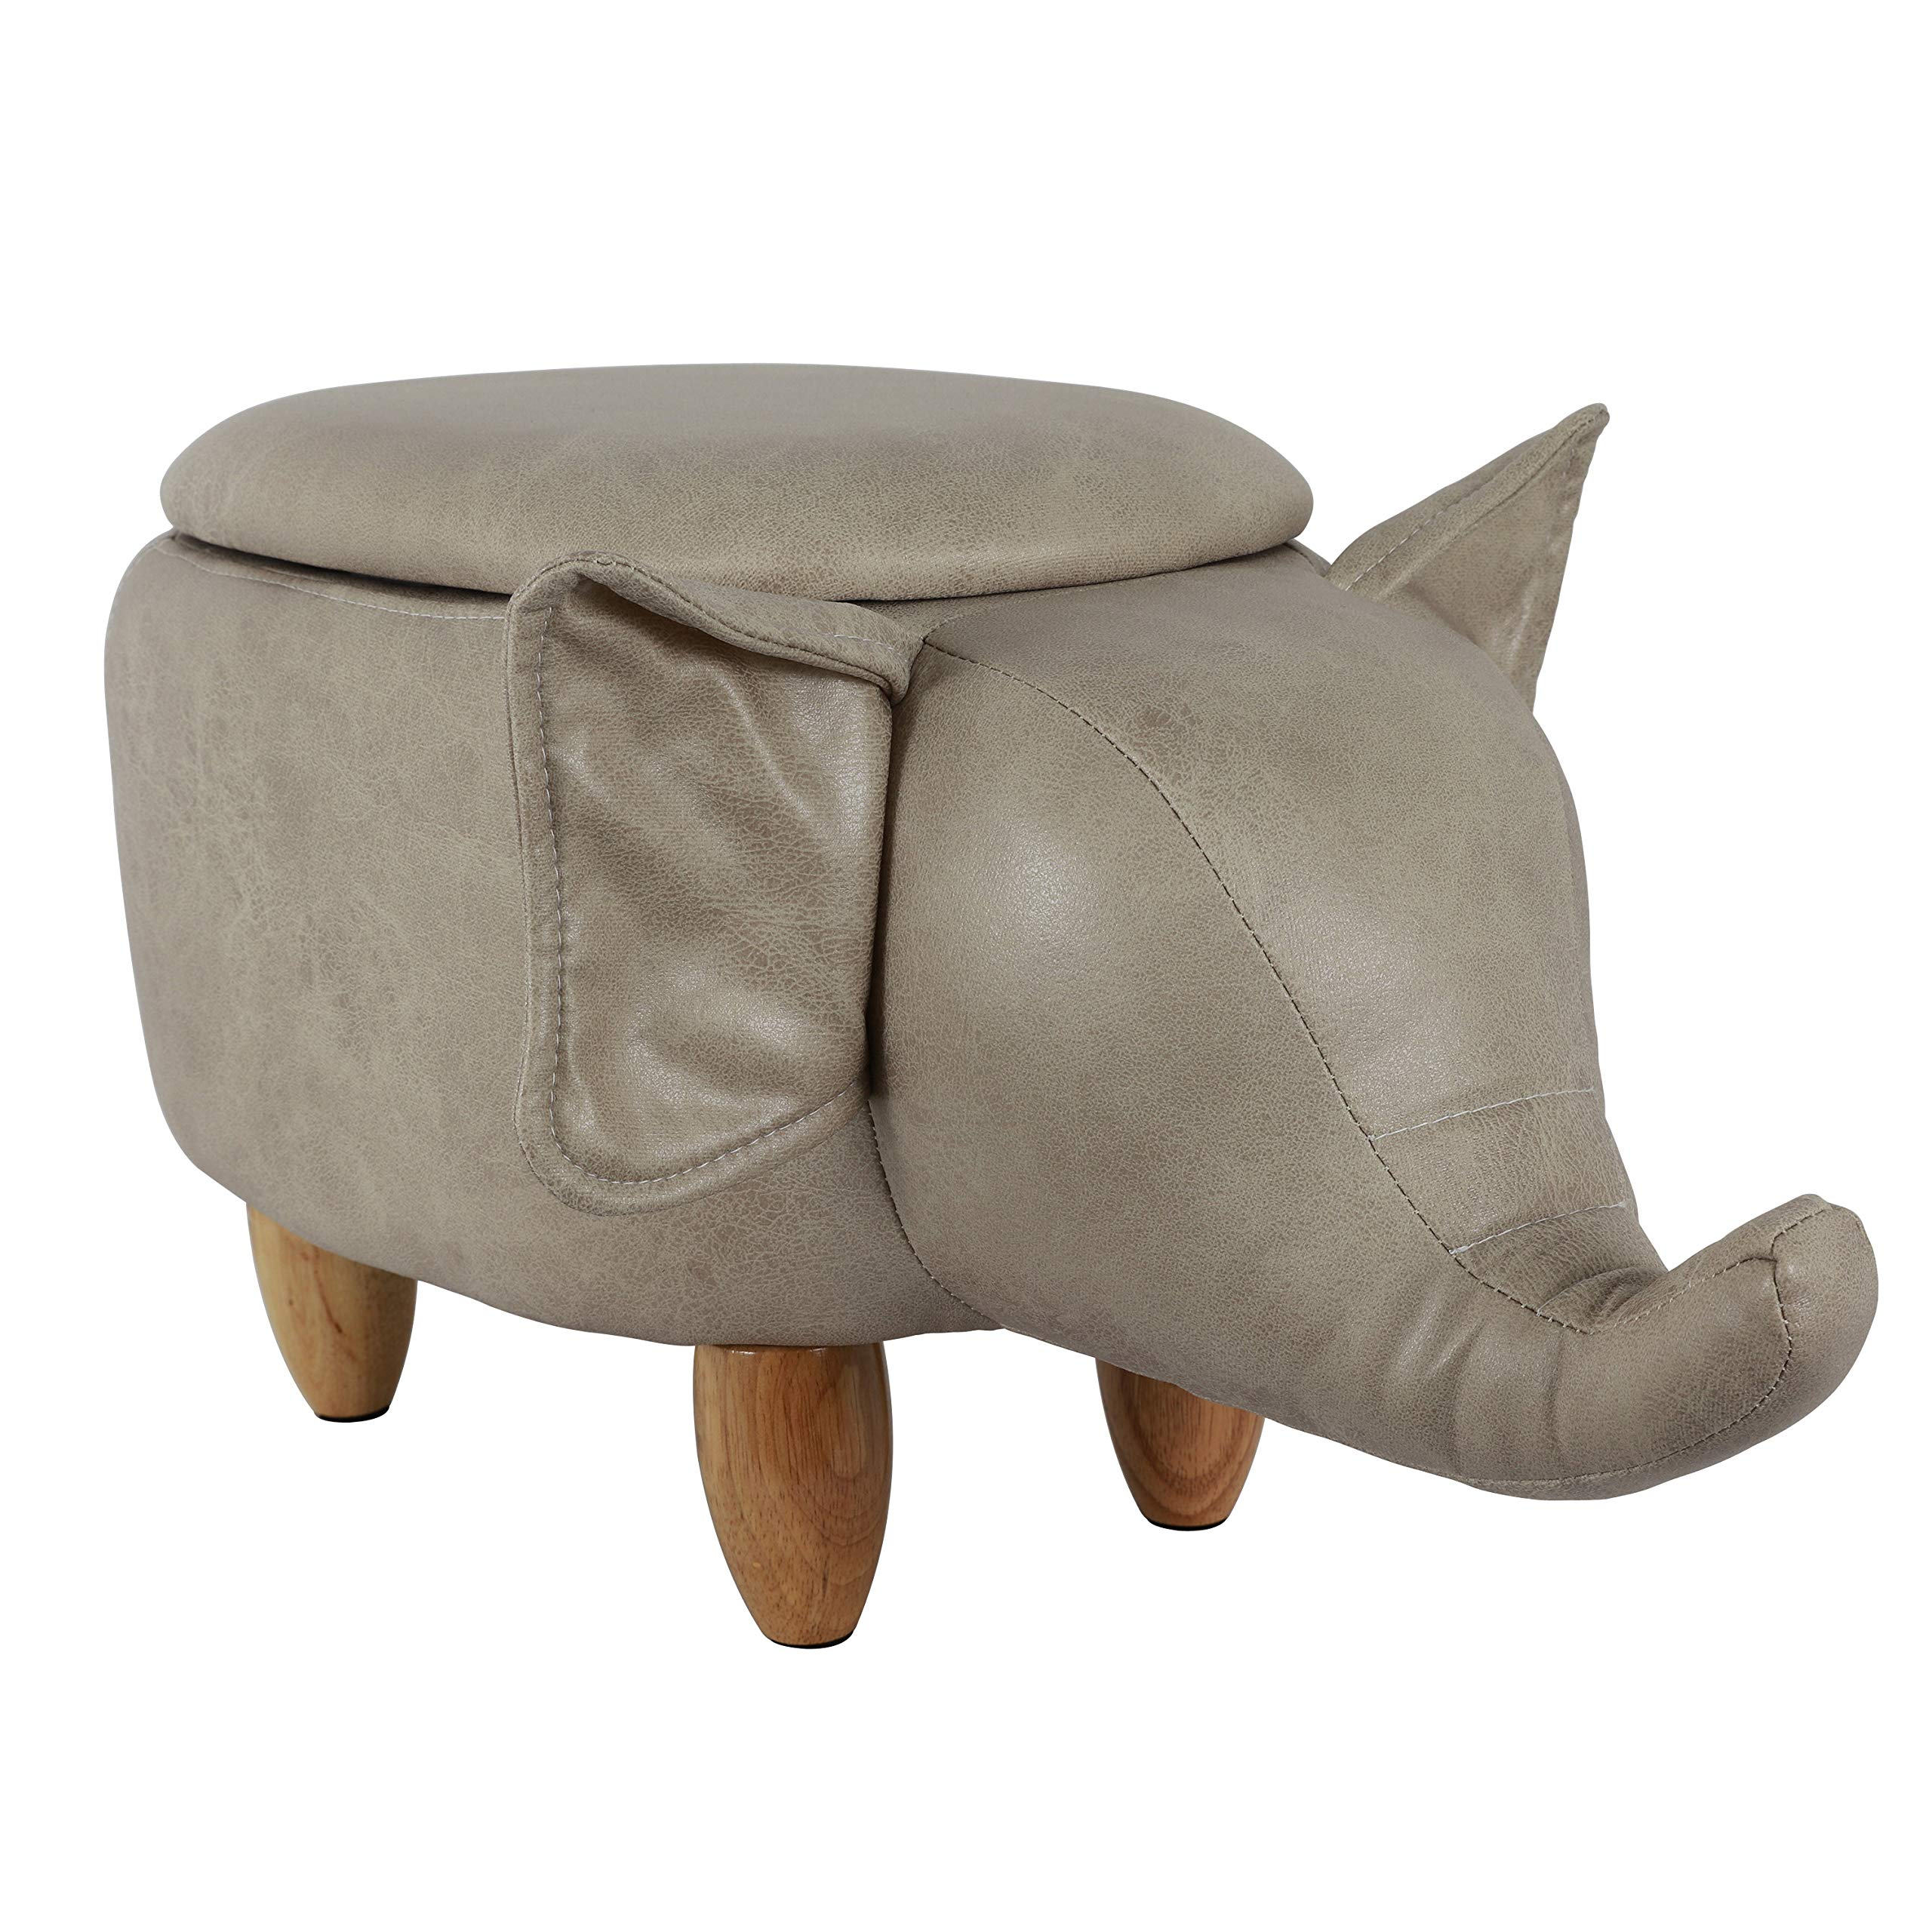 Decor Therapy Storage Stool, Elephant